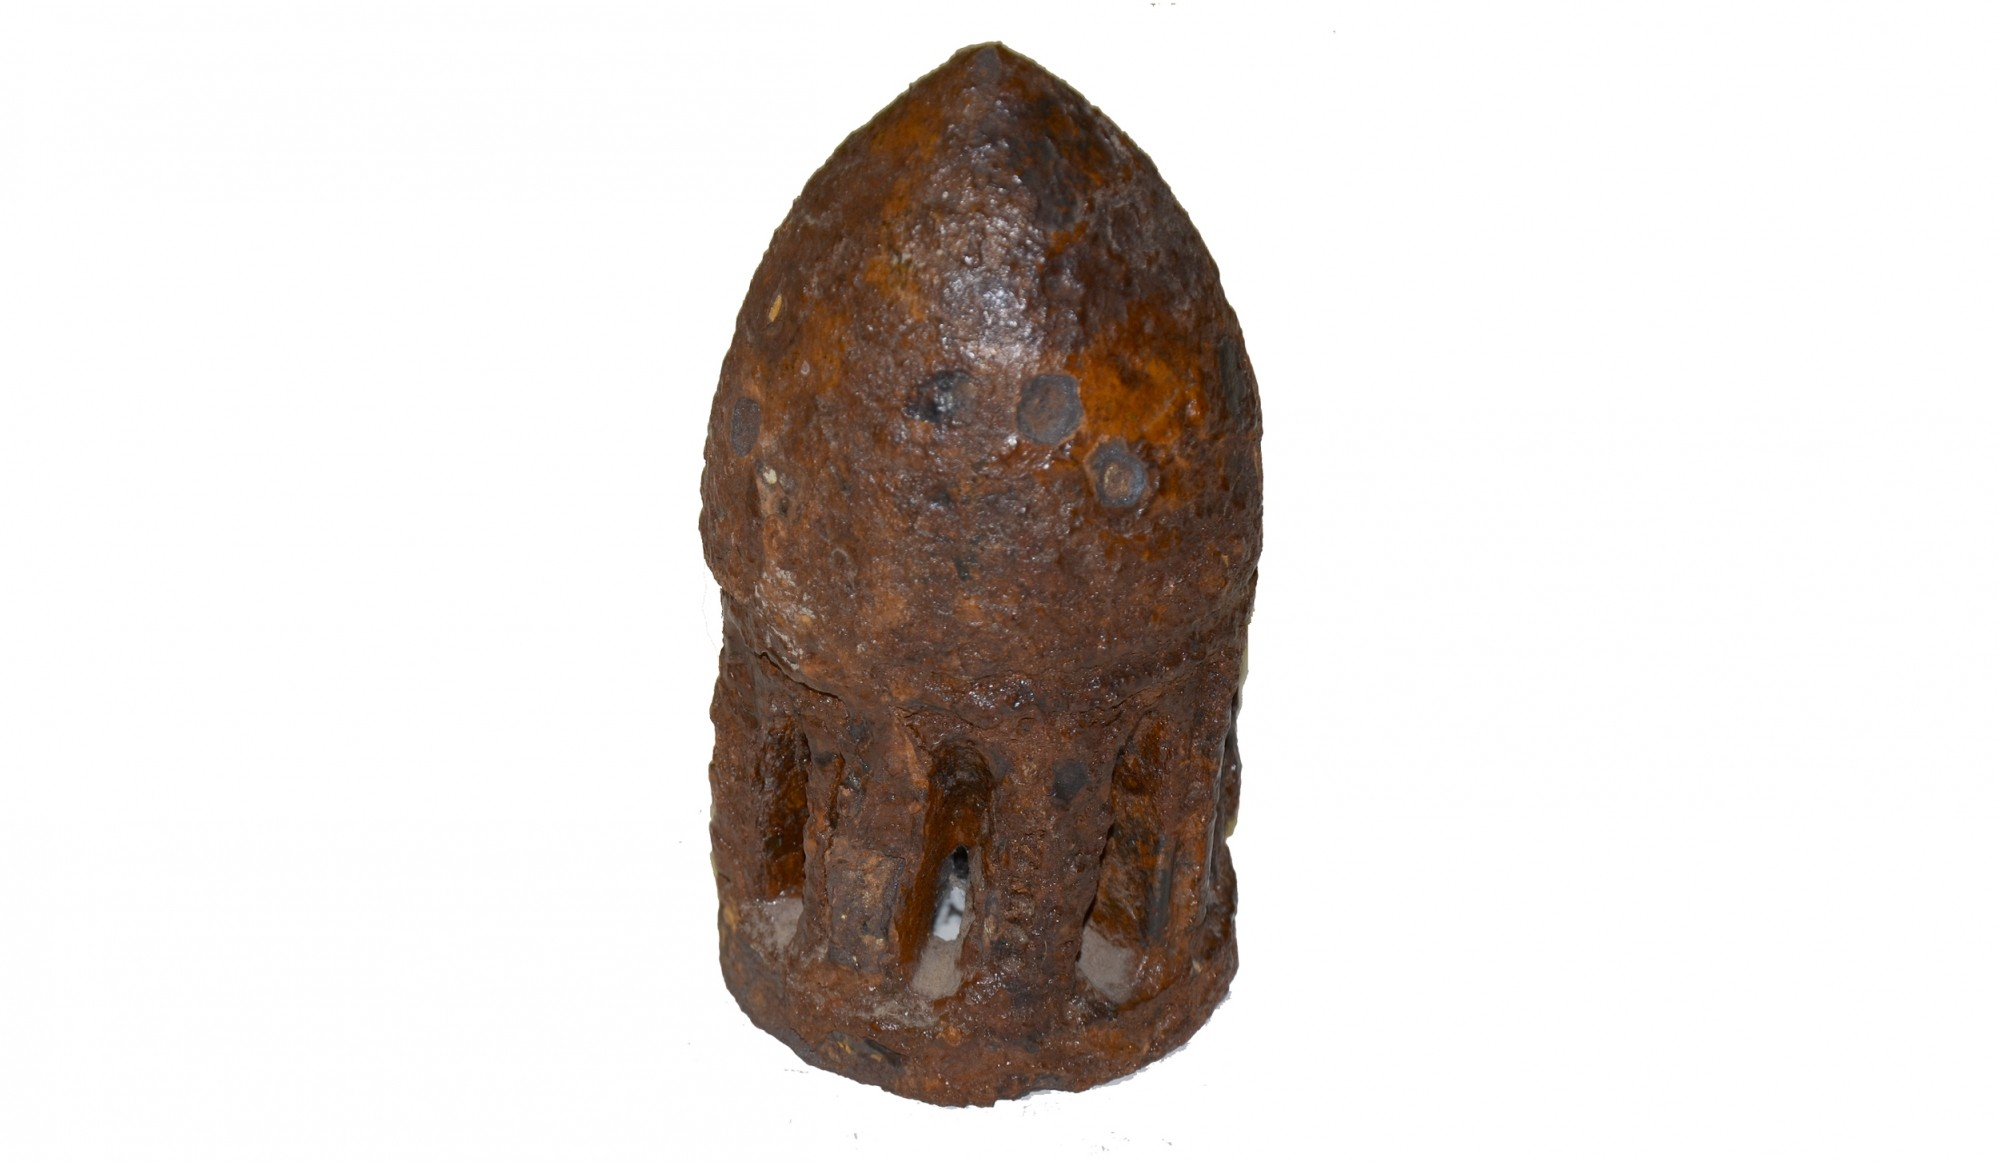 US 3.67 JAMES BOLT FOUND AT SHILOH, TN